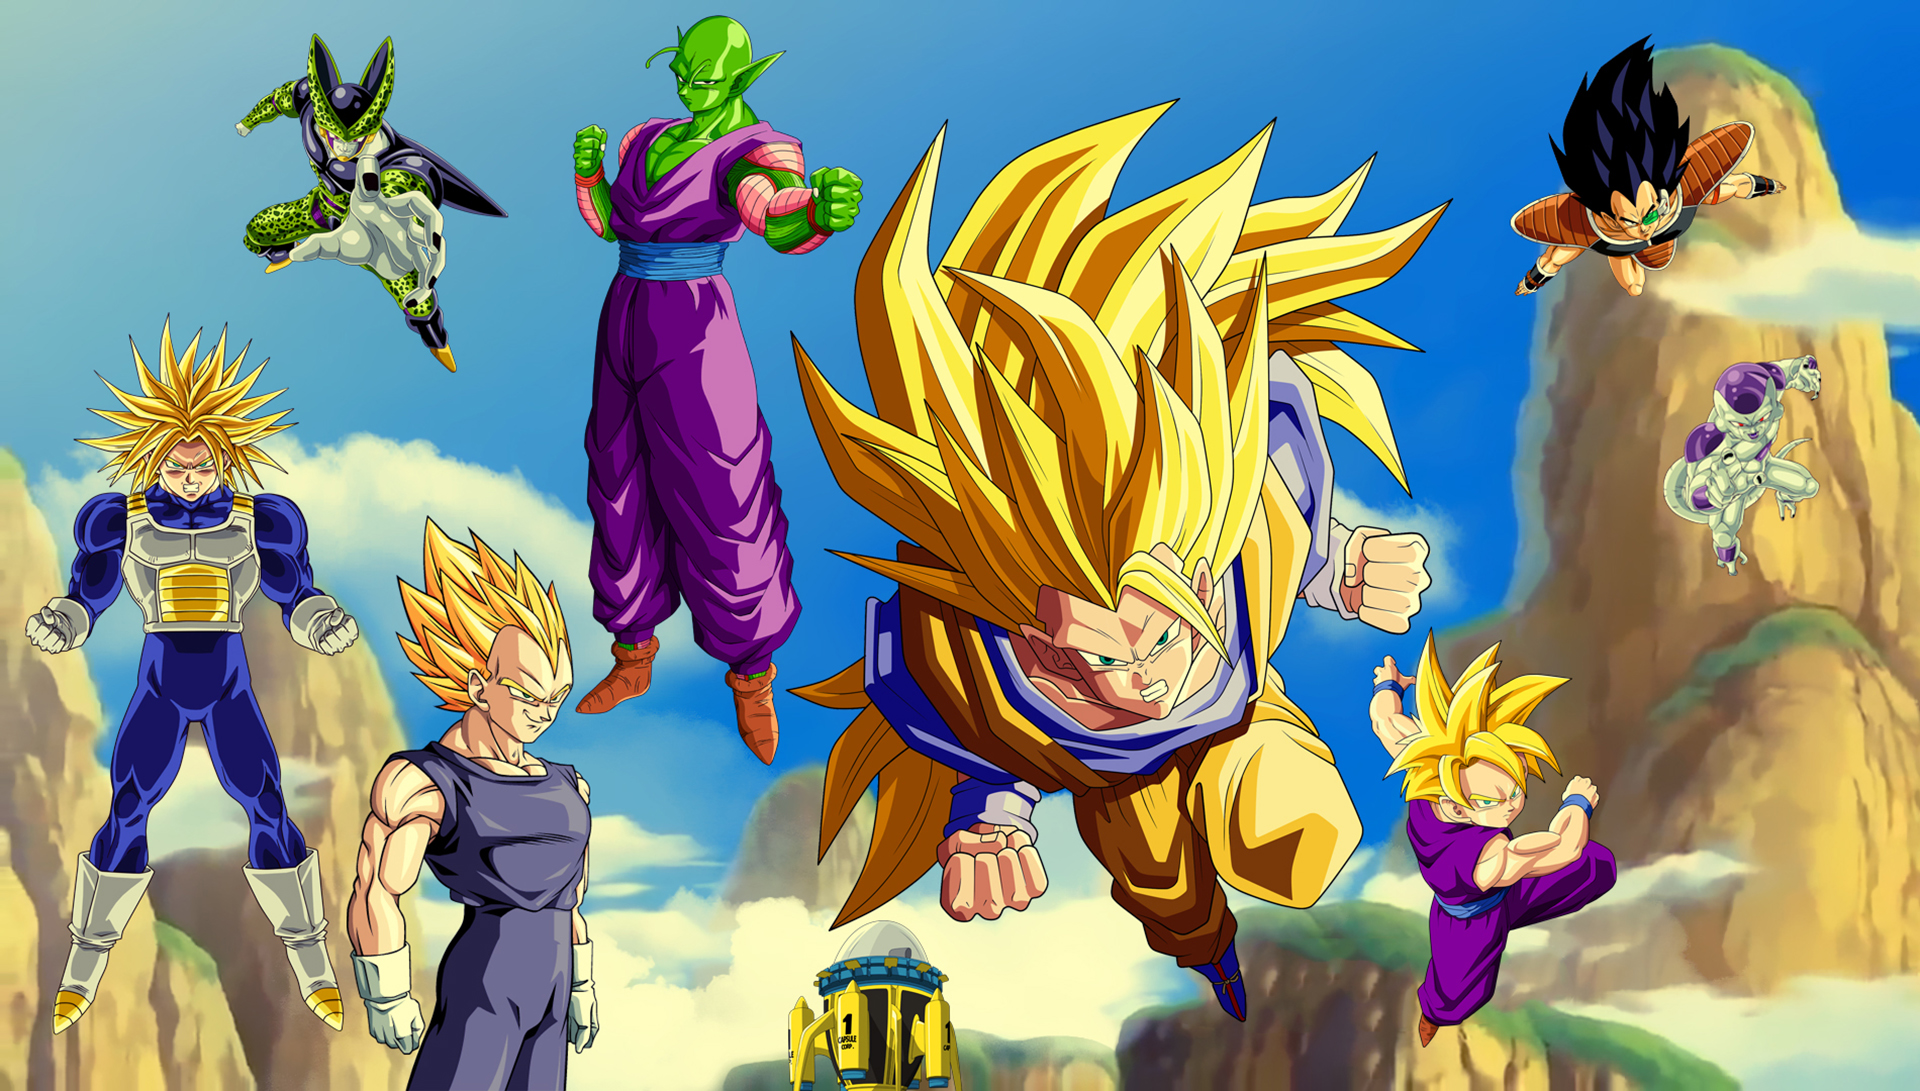 Dragon Ball Z Poster 2 Wallpaper And Background Image